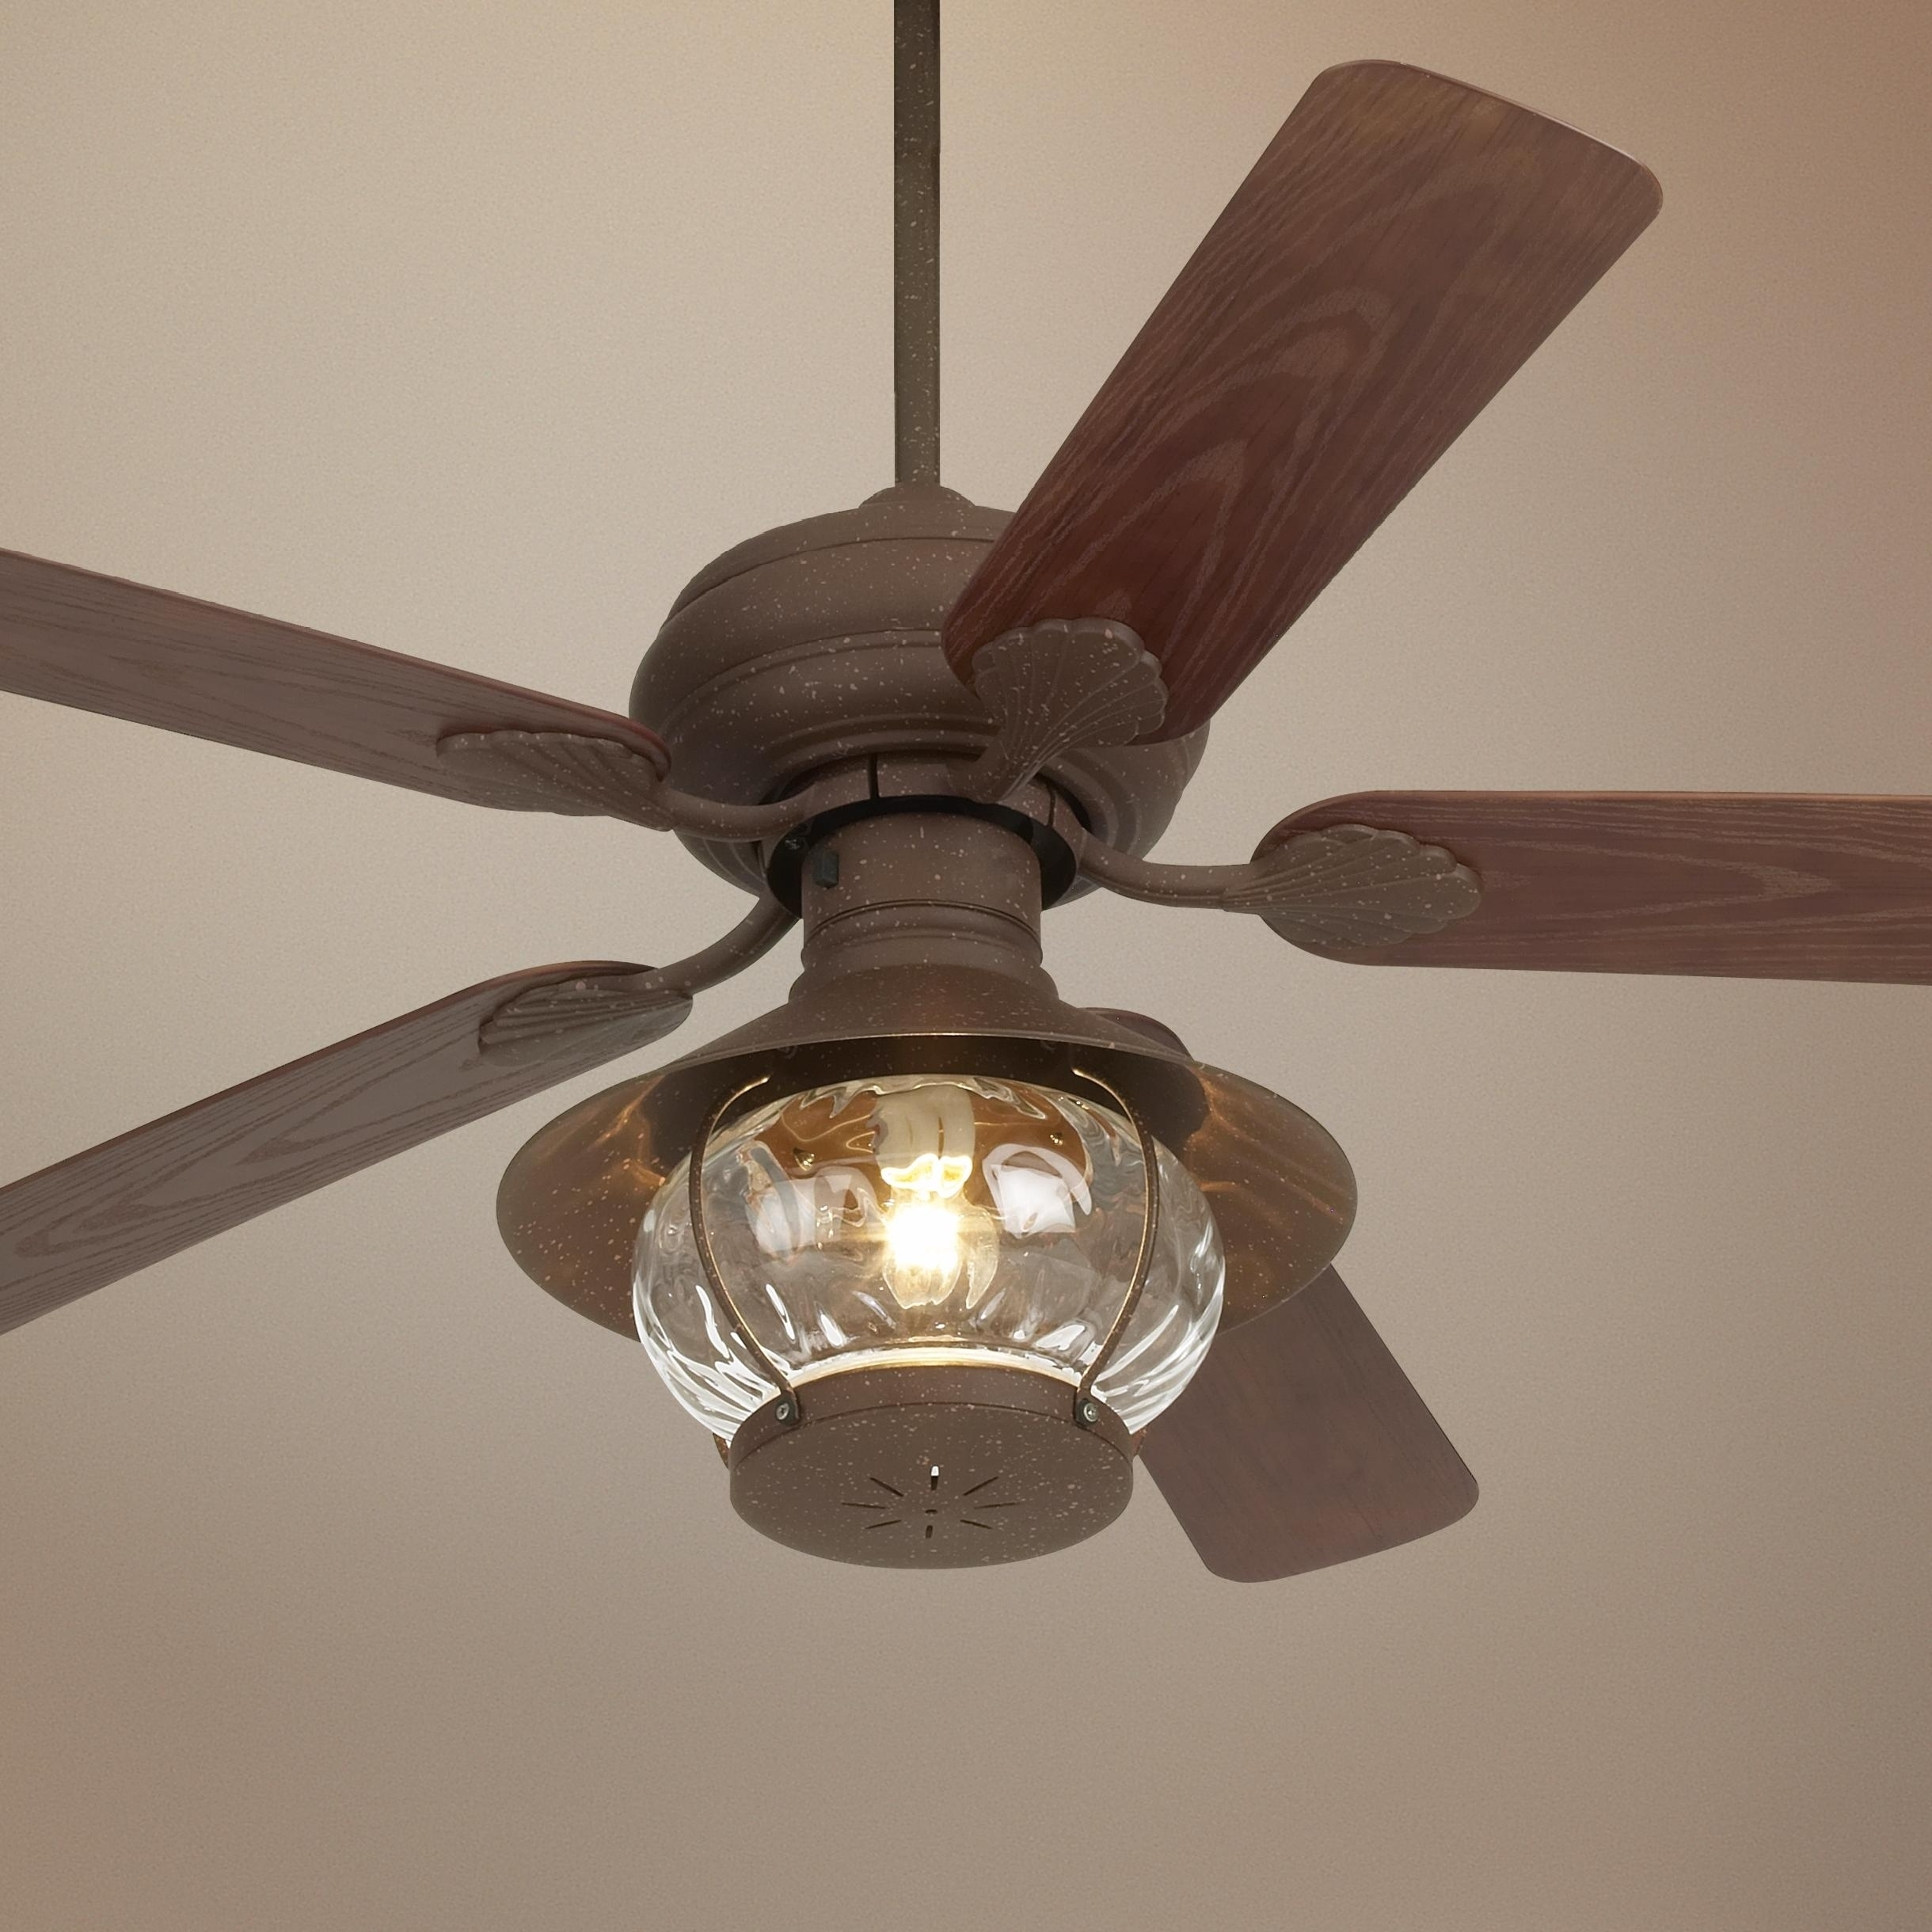 Most Popular Ceiling: Awesome Rustic Outdoor Ceiling Fans Rustic Ceiling Fans Within Outdoor Ceiling Fans With Lantern (View 4 of 20)